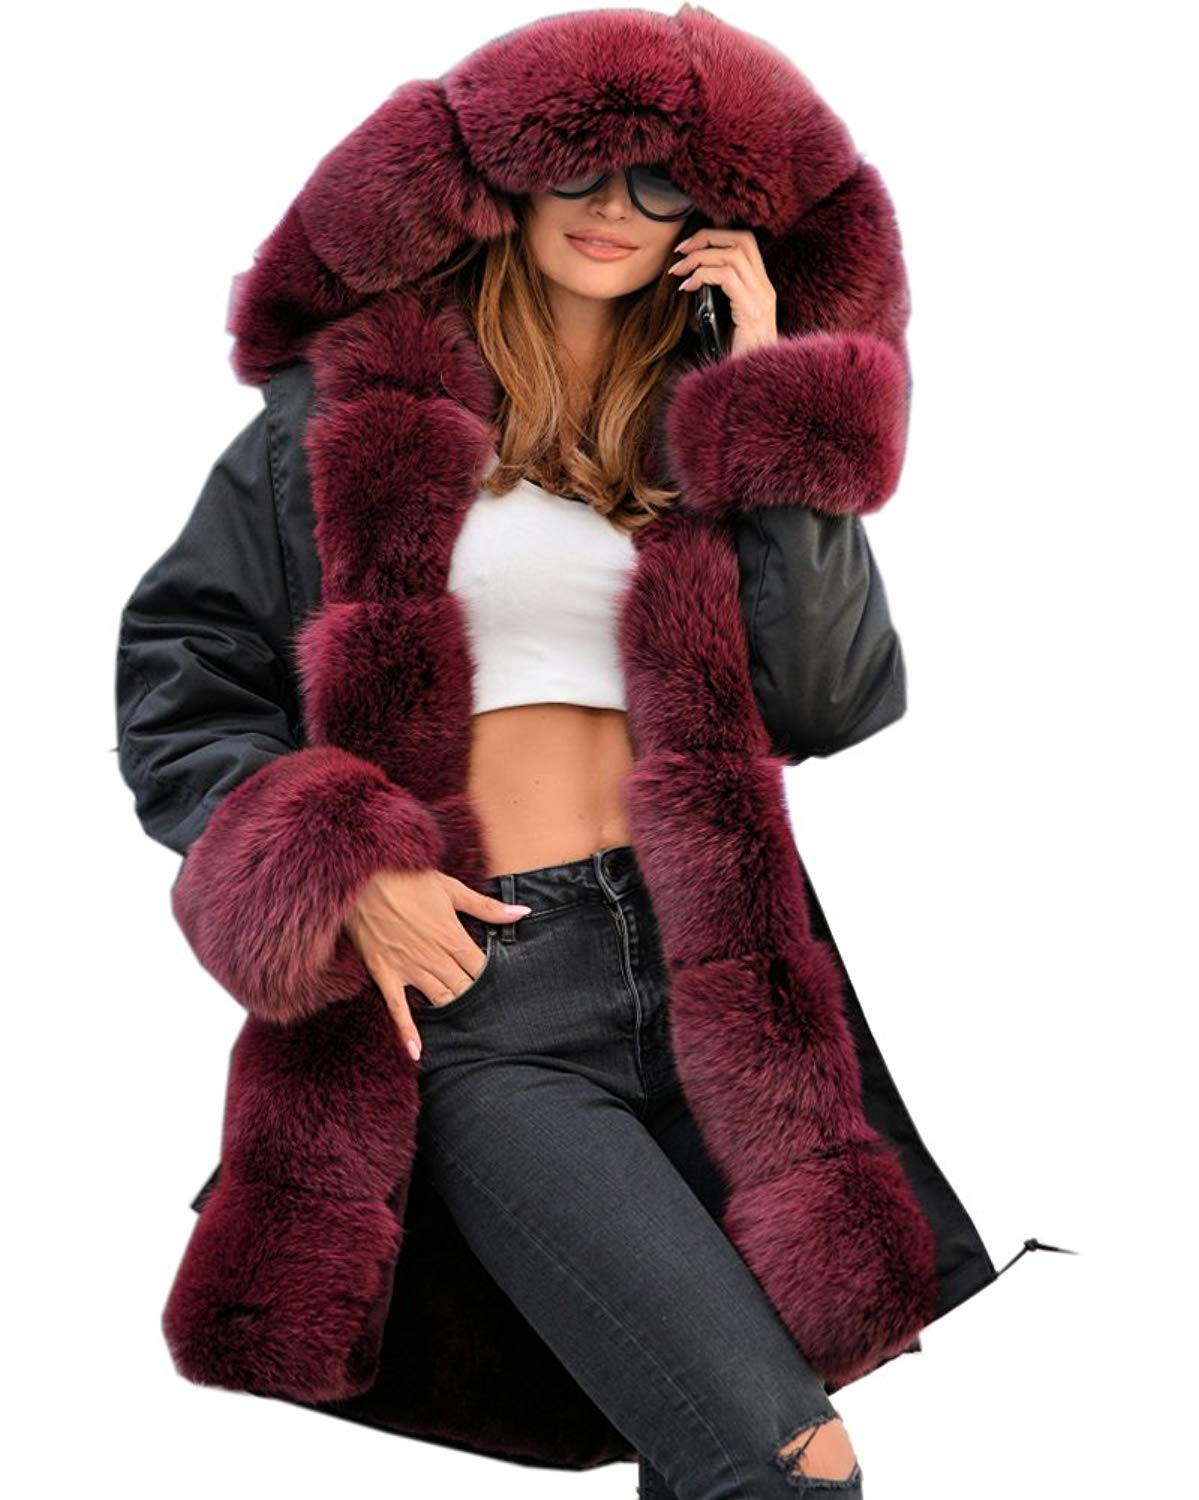 Women Winter Jackets roiii women ladies winter long warm thick parka faux fur jacket hooded coat  s-xxl JATNZJA